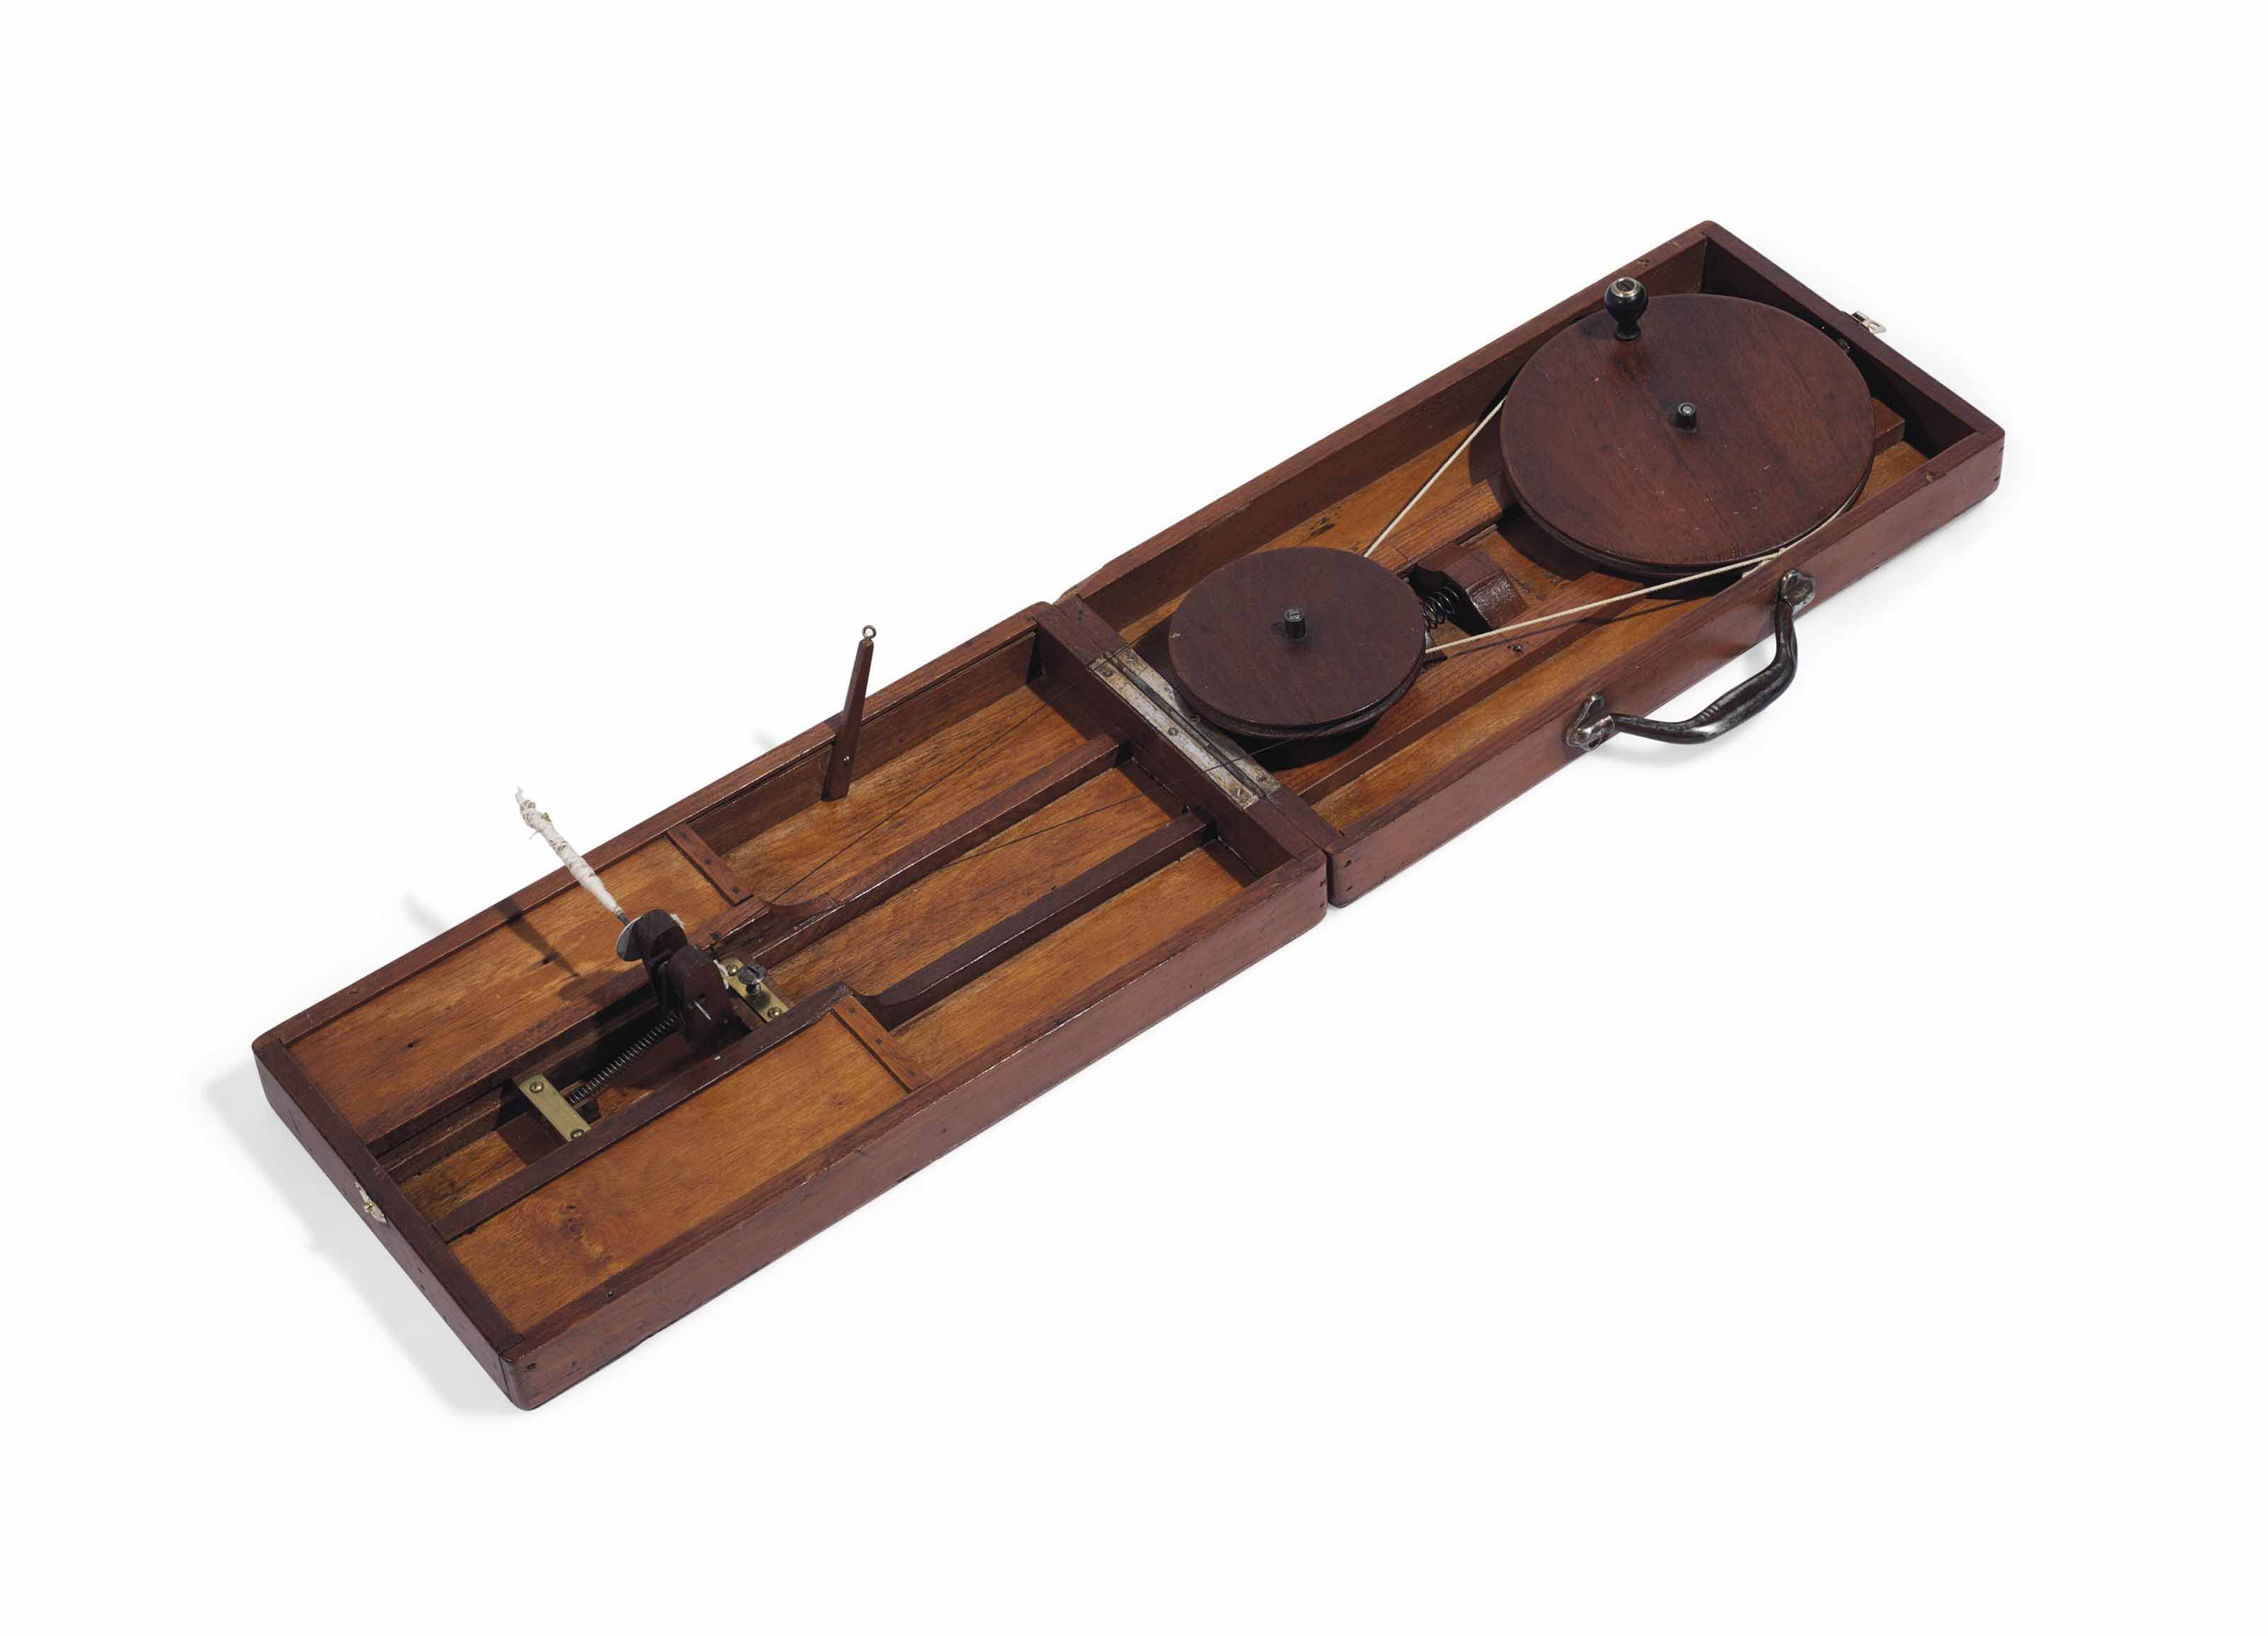 [GANDHI, Mohandas Karamchand (1869-1948)]. A portable charkha (spinning wheel), owned by Gandhi, and reputedly used by him in Yerawda Jail (Pune) in c.1930, Indian teak, hollow metal handle (clasp replaced, strings and thread renewed, signs of use), the folding case approximately 915 x 233 x 40 mm when open.